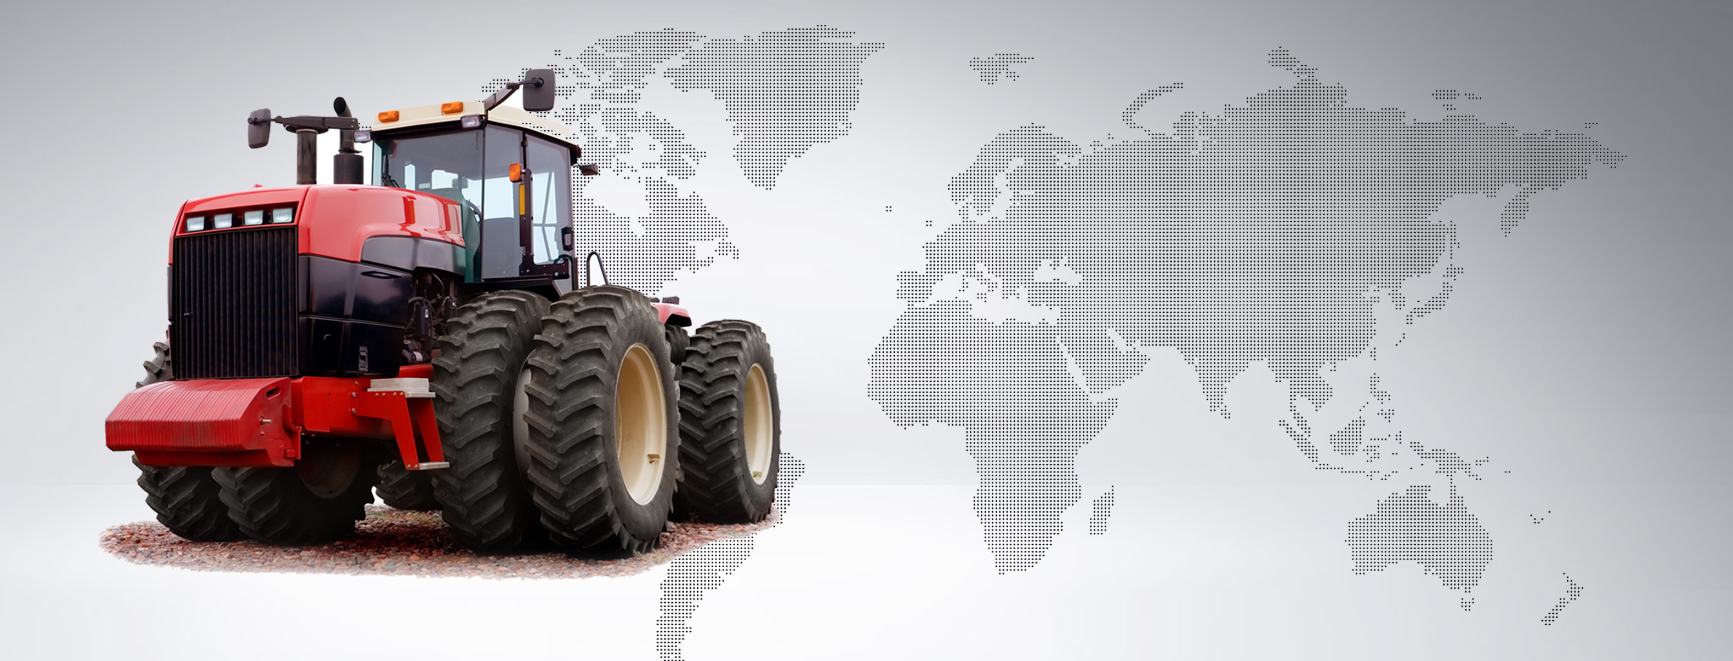 wsd-wheel-increase-tractor-performance